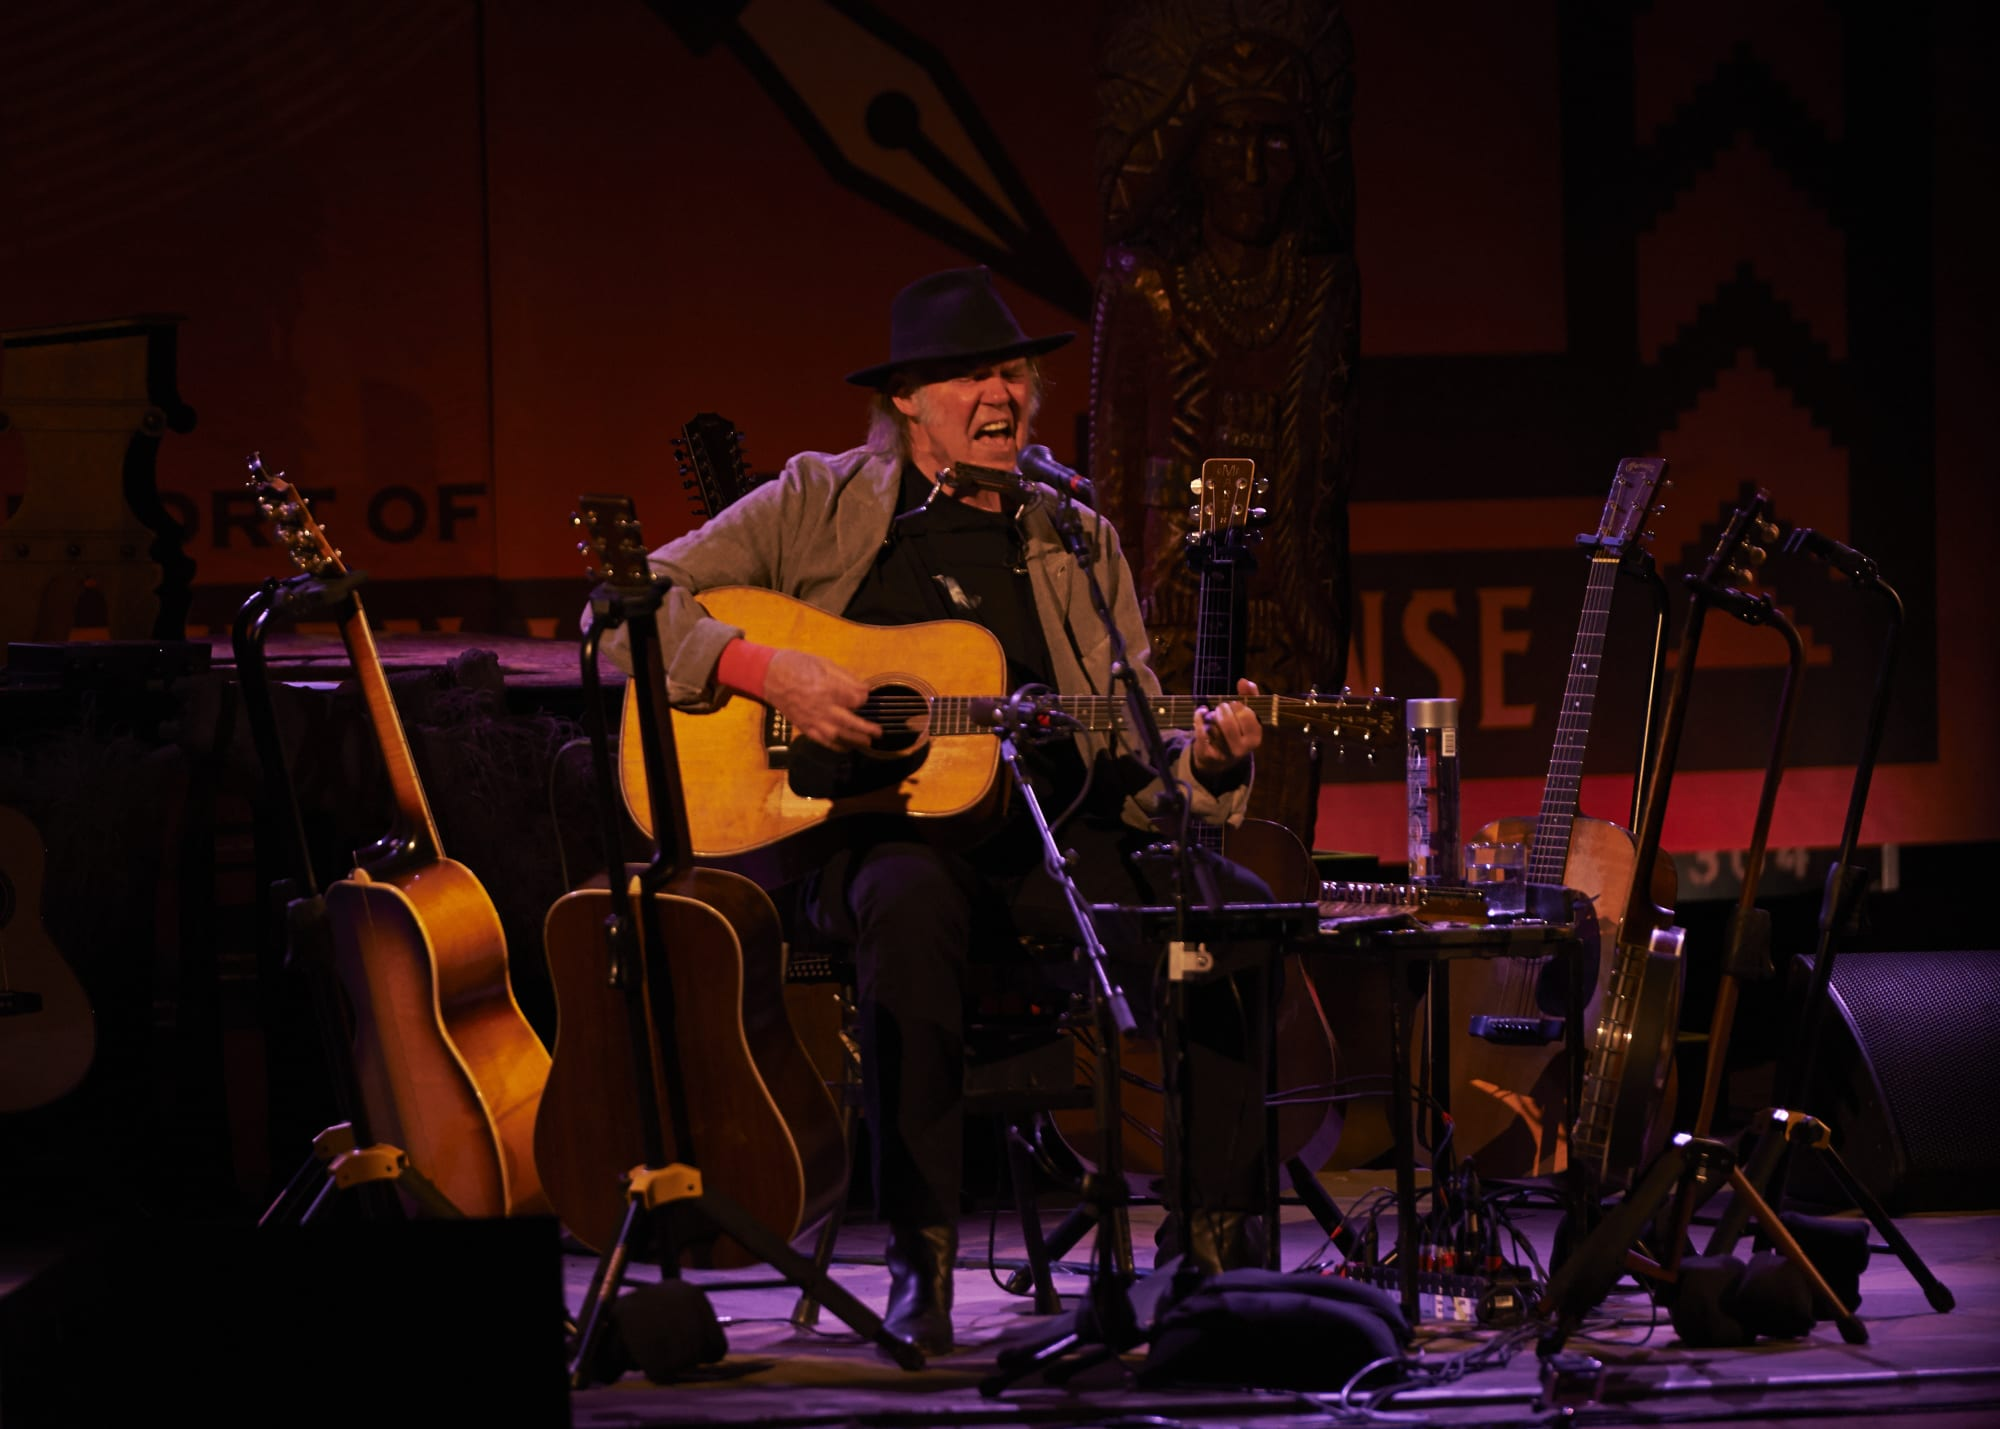 Neil Young Plays for a sold out crowd at Massey Hall